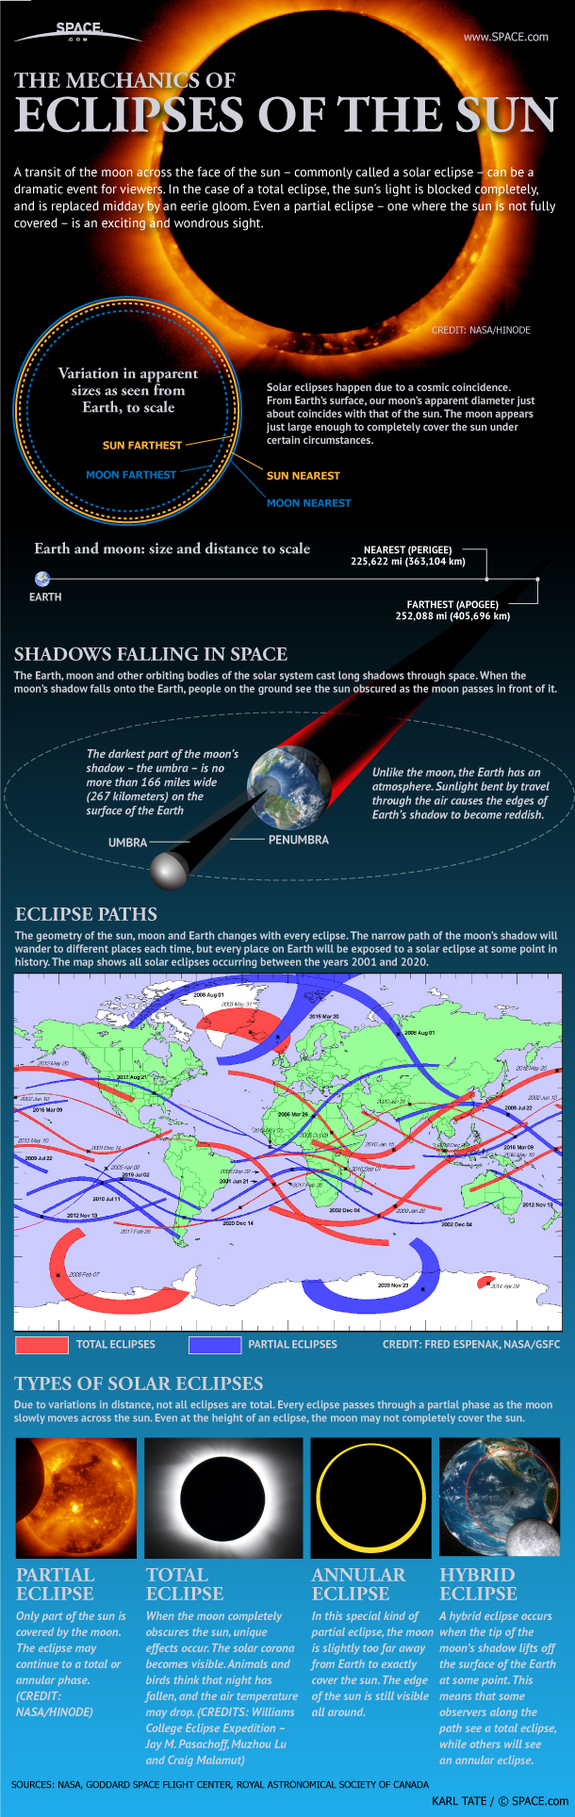 Mechanics of Solar Eclipse